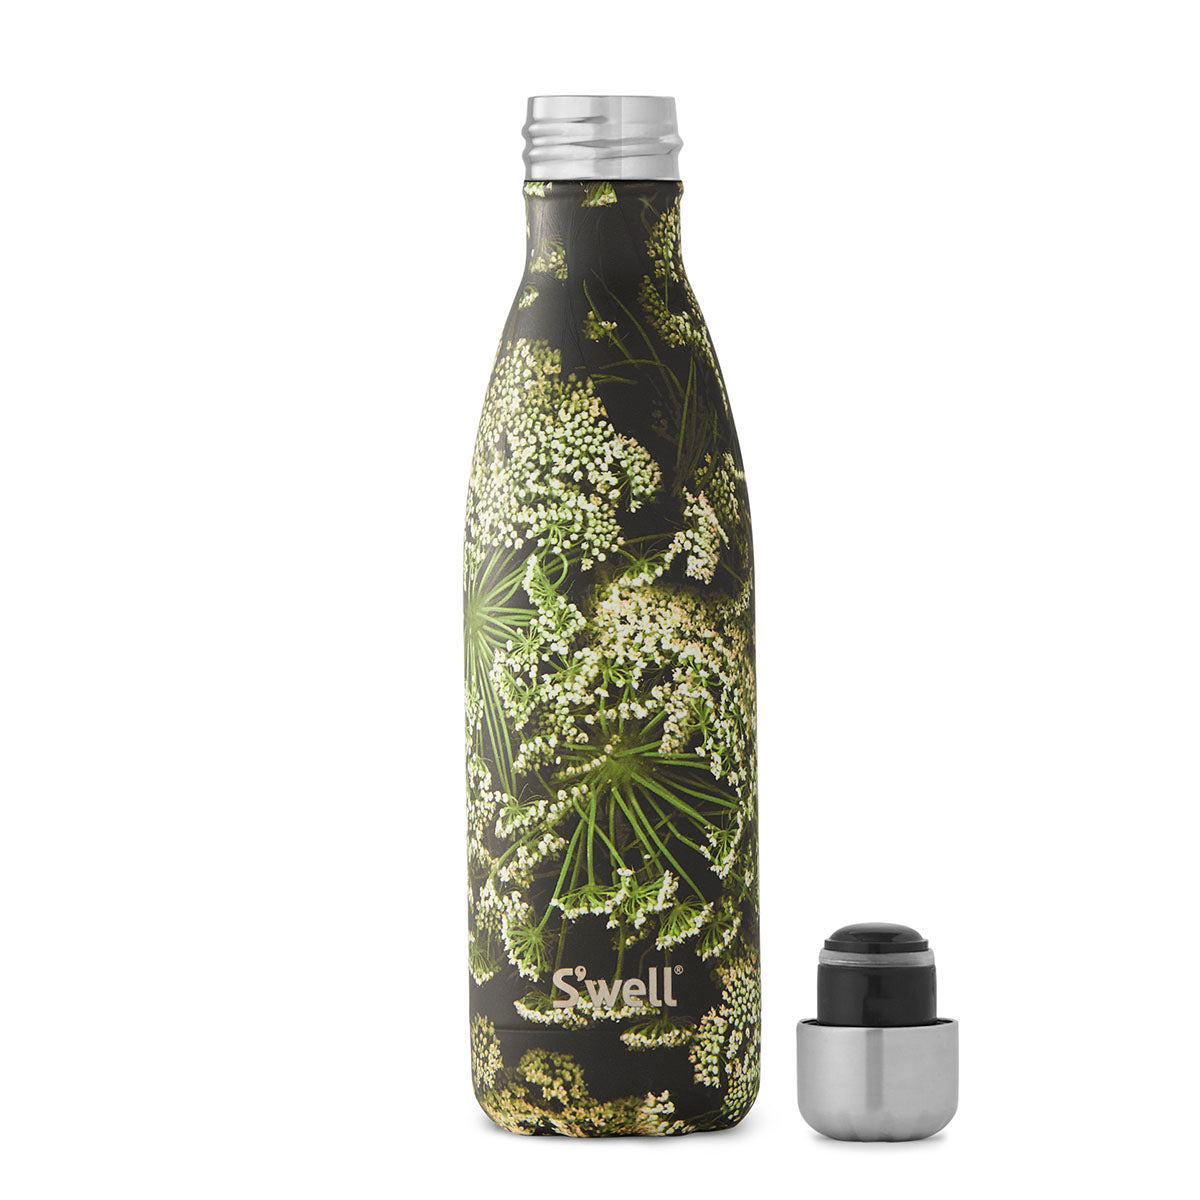 S'Well: Flora & Fauna Collection - 500ml Queen Ann's Lace